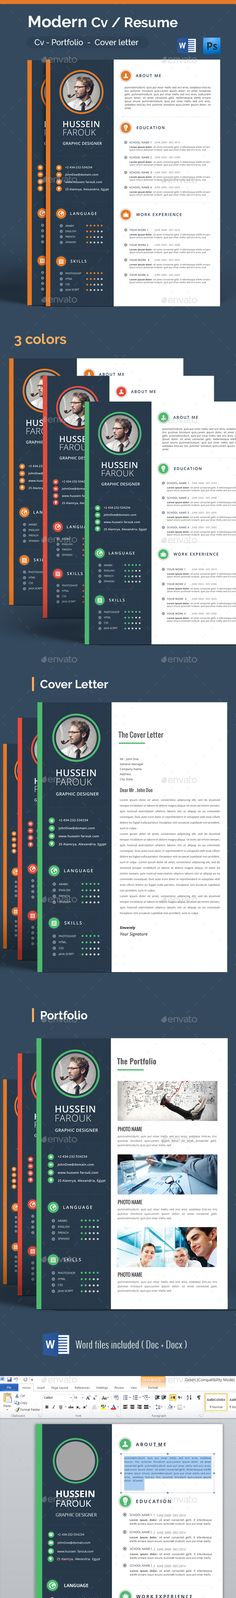 Modern Cv / Resume — Photoshop PSD #editable #cover letter • Available here → https://graphicriver.net/item/modern-cv-resume/14036497?ref=pxcr